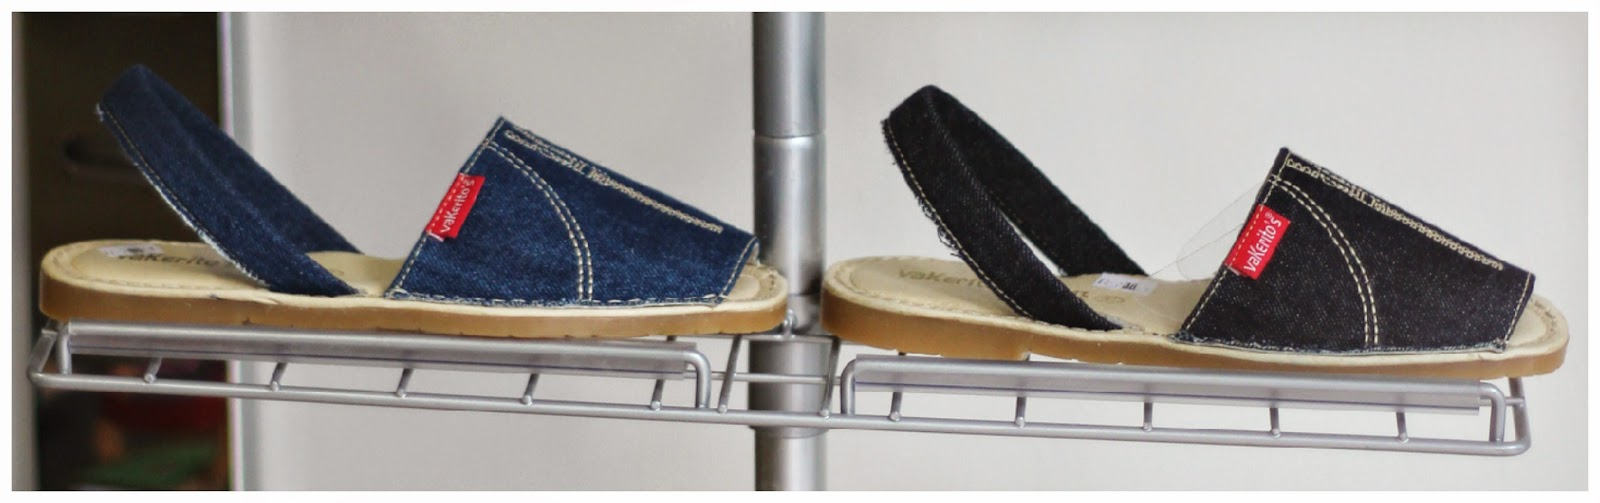 vakeritos - calzado Alicante - made in Spain - spanish shoes